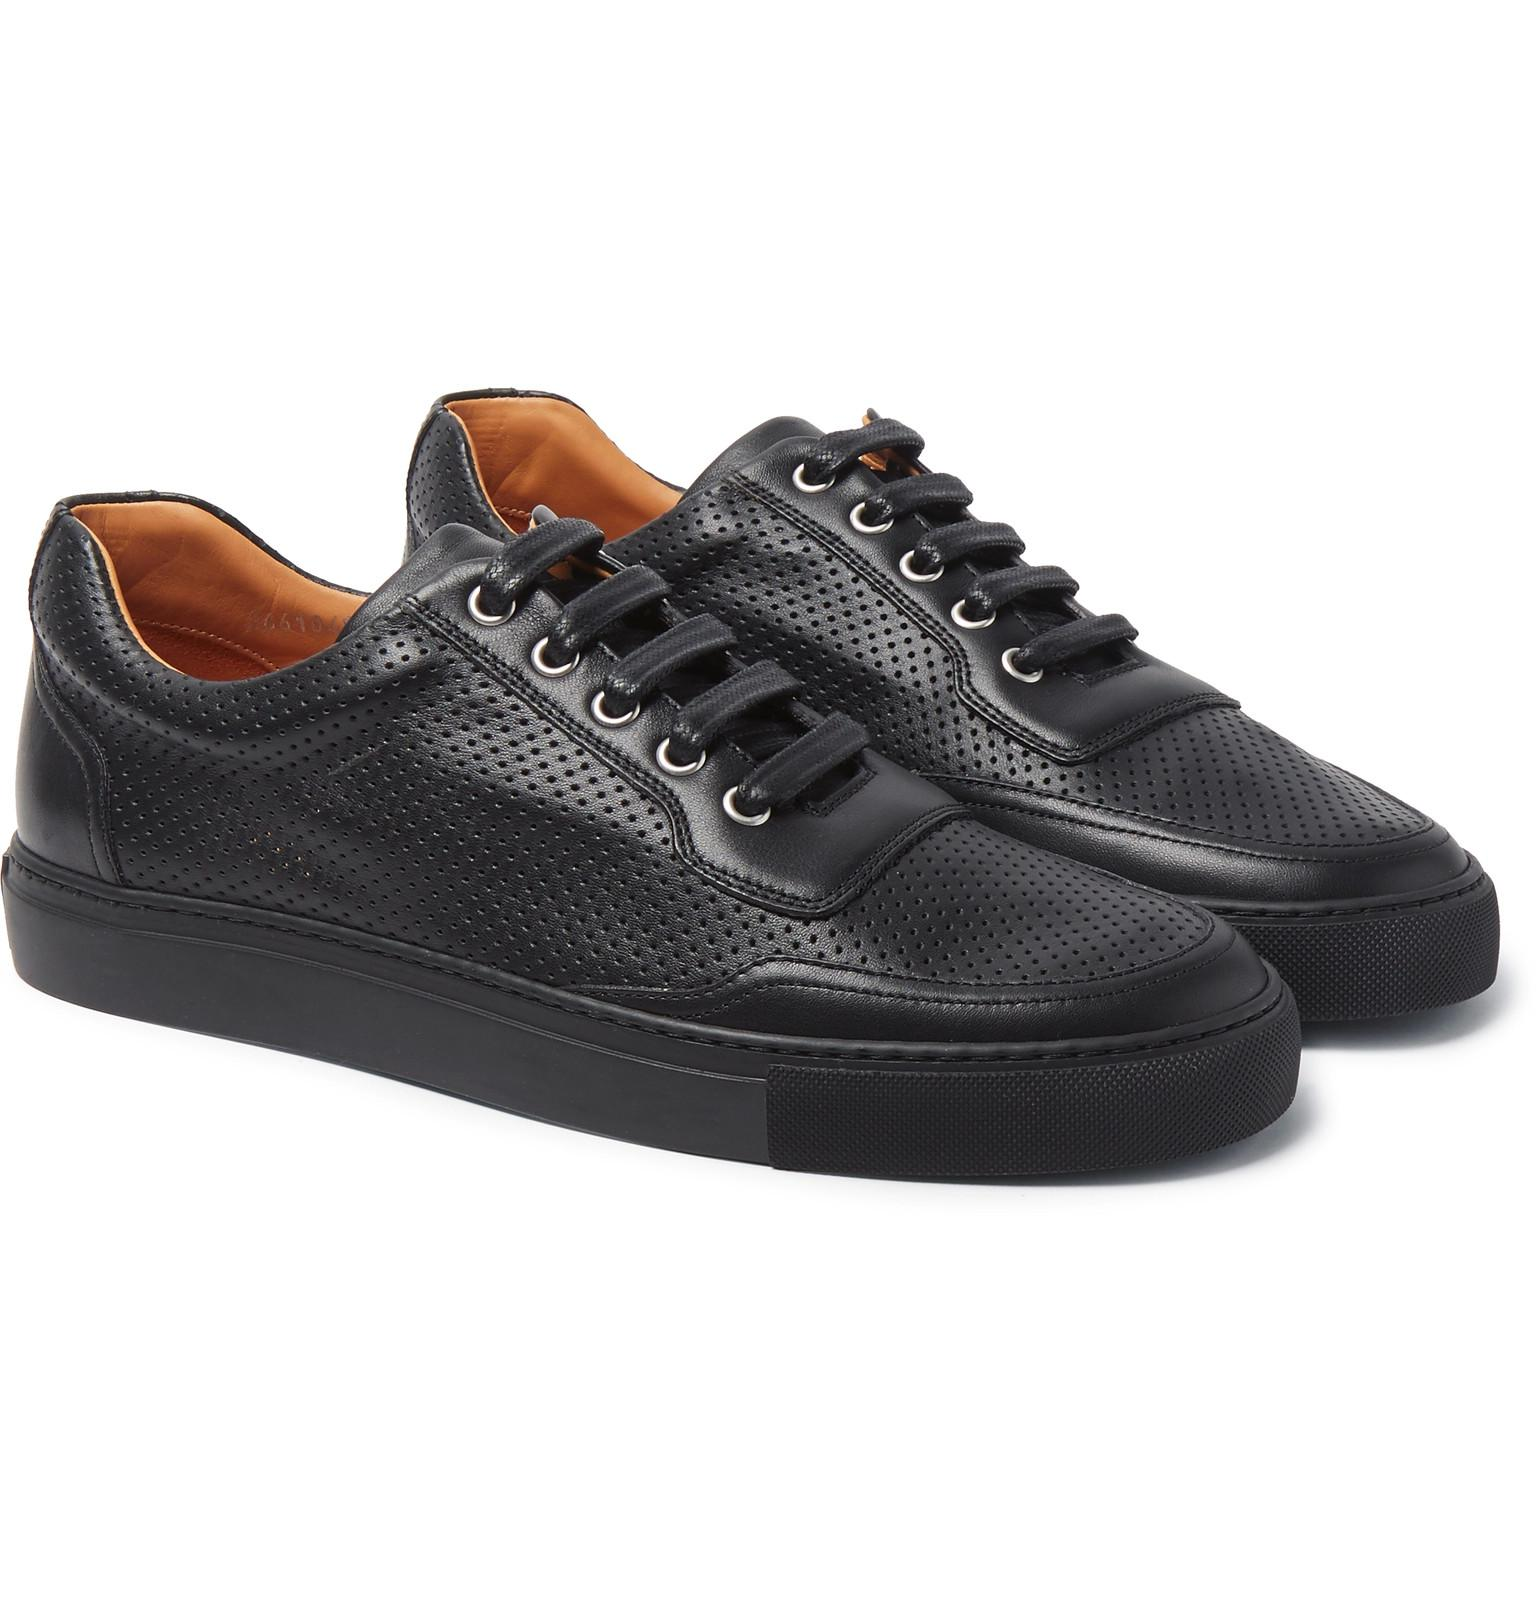 466841f7607 Lyst - Harry s Of London Mr Jones 2 Perforated Leather Sneakers in ...